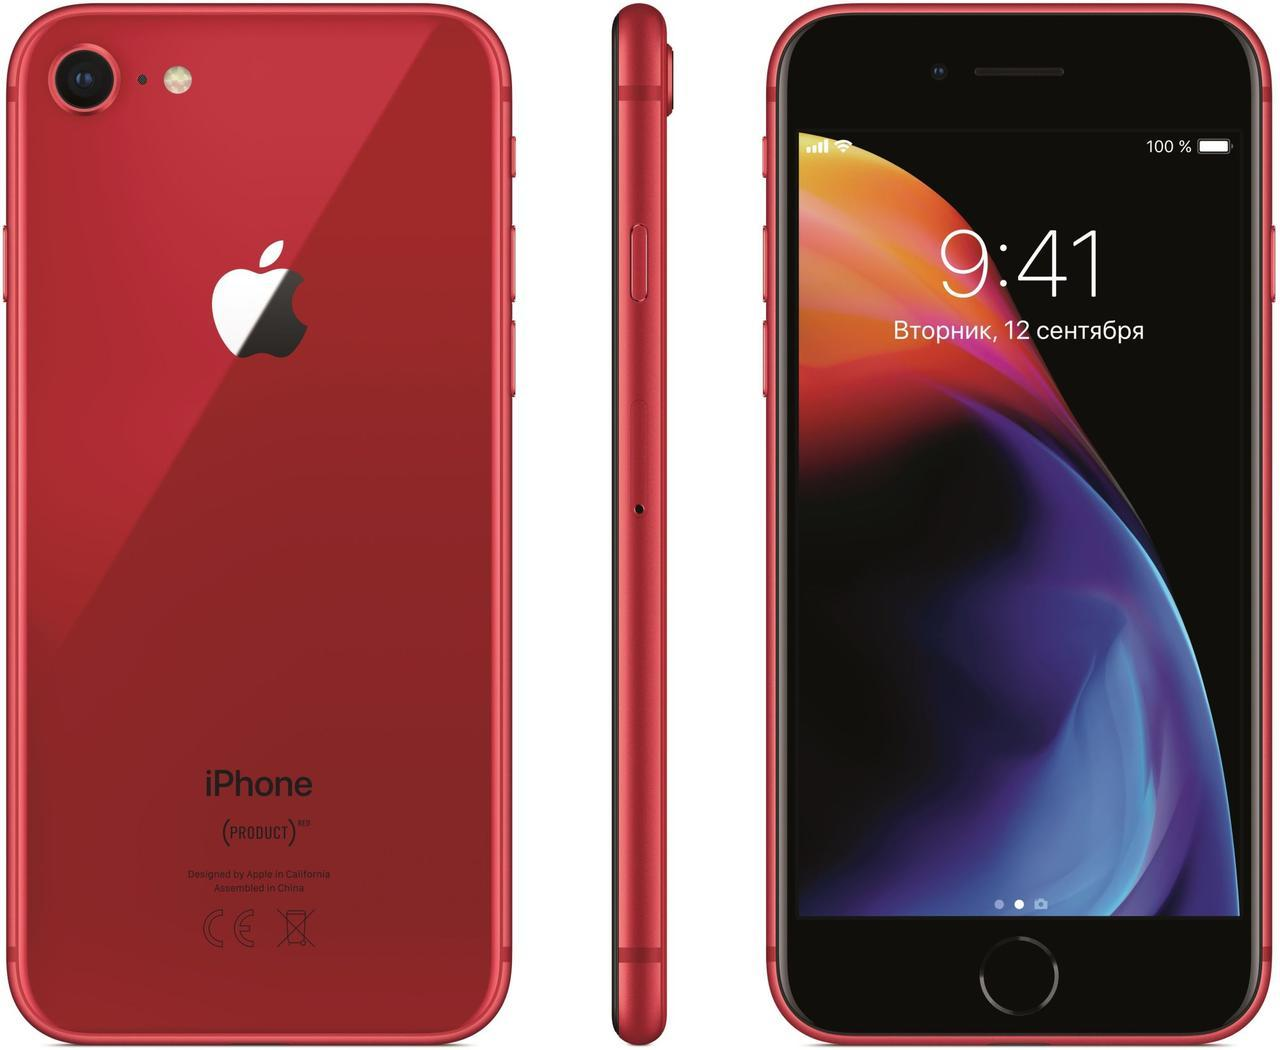 IPhone Xr 256Gb (PRODUCT) RED HK